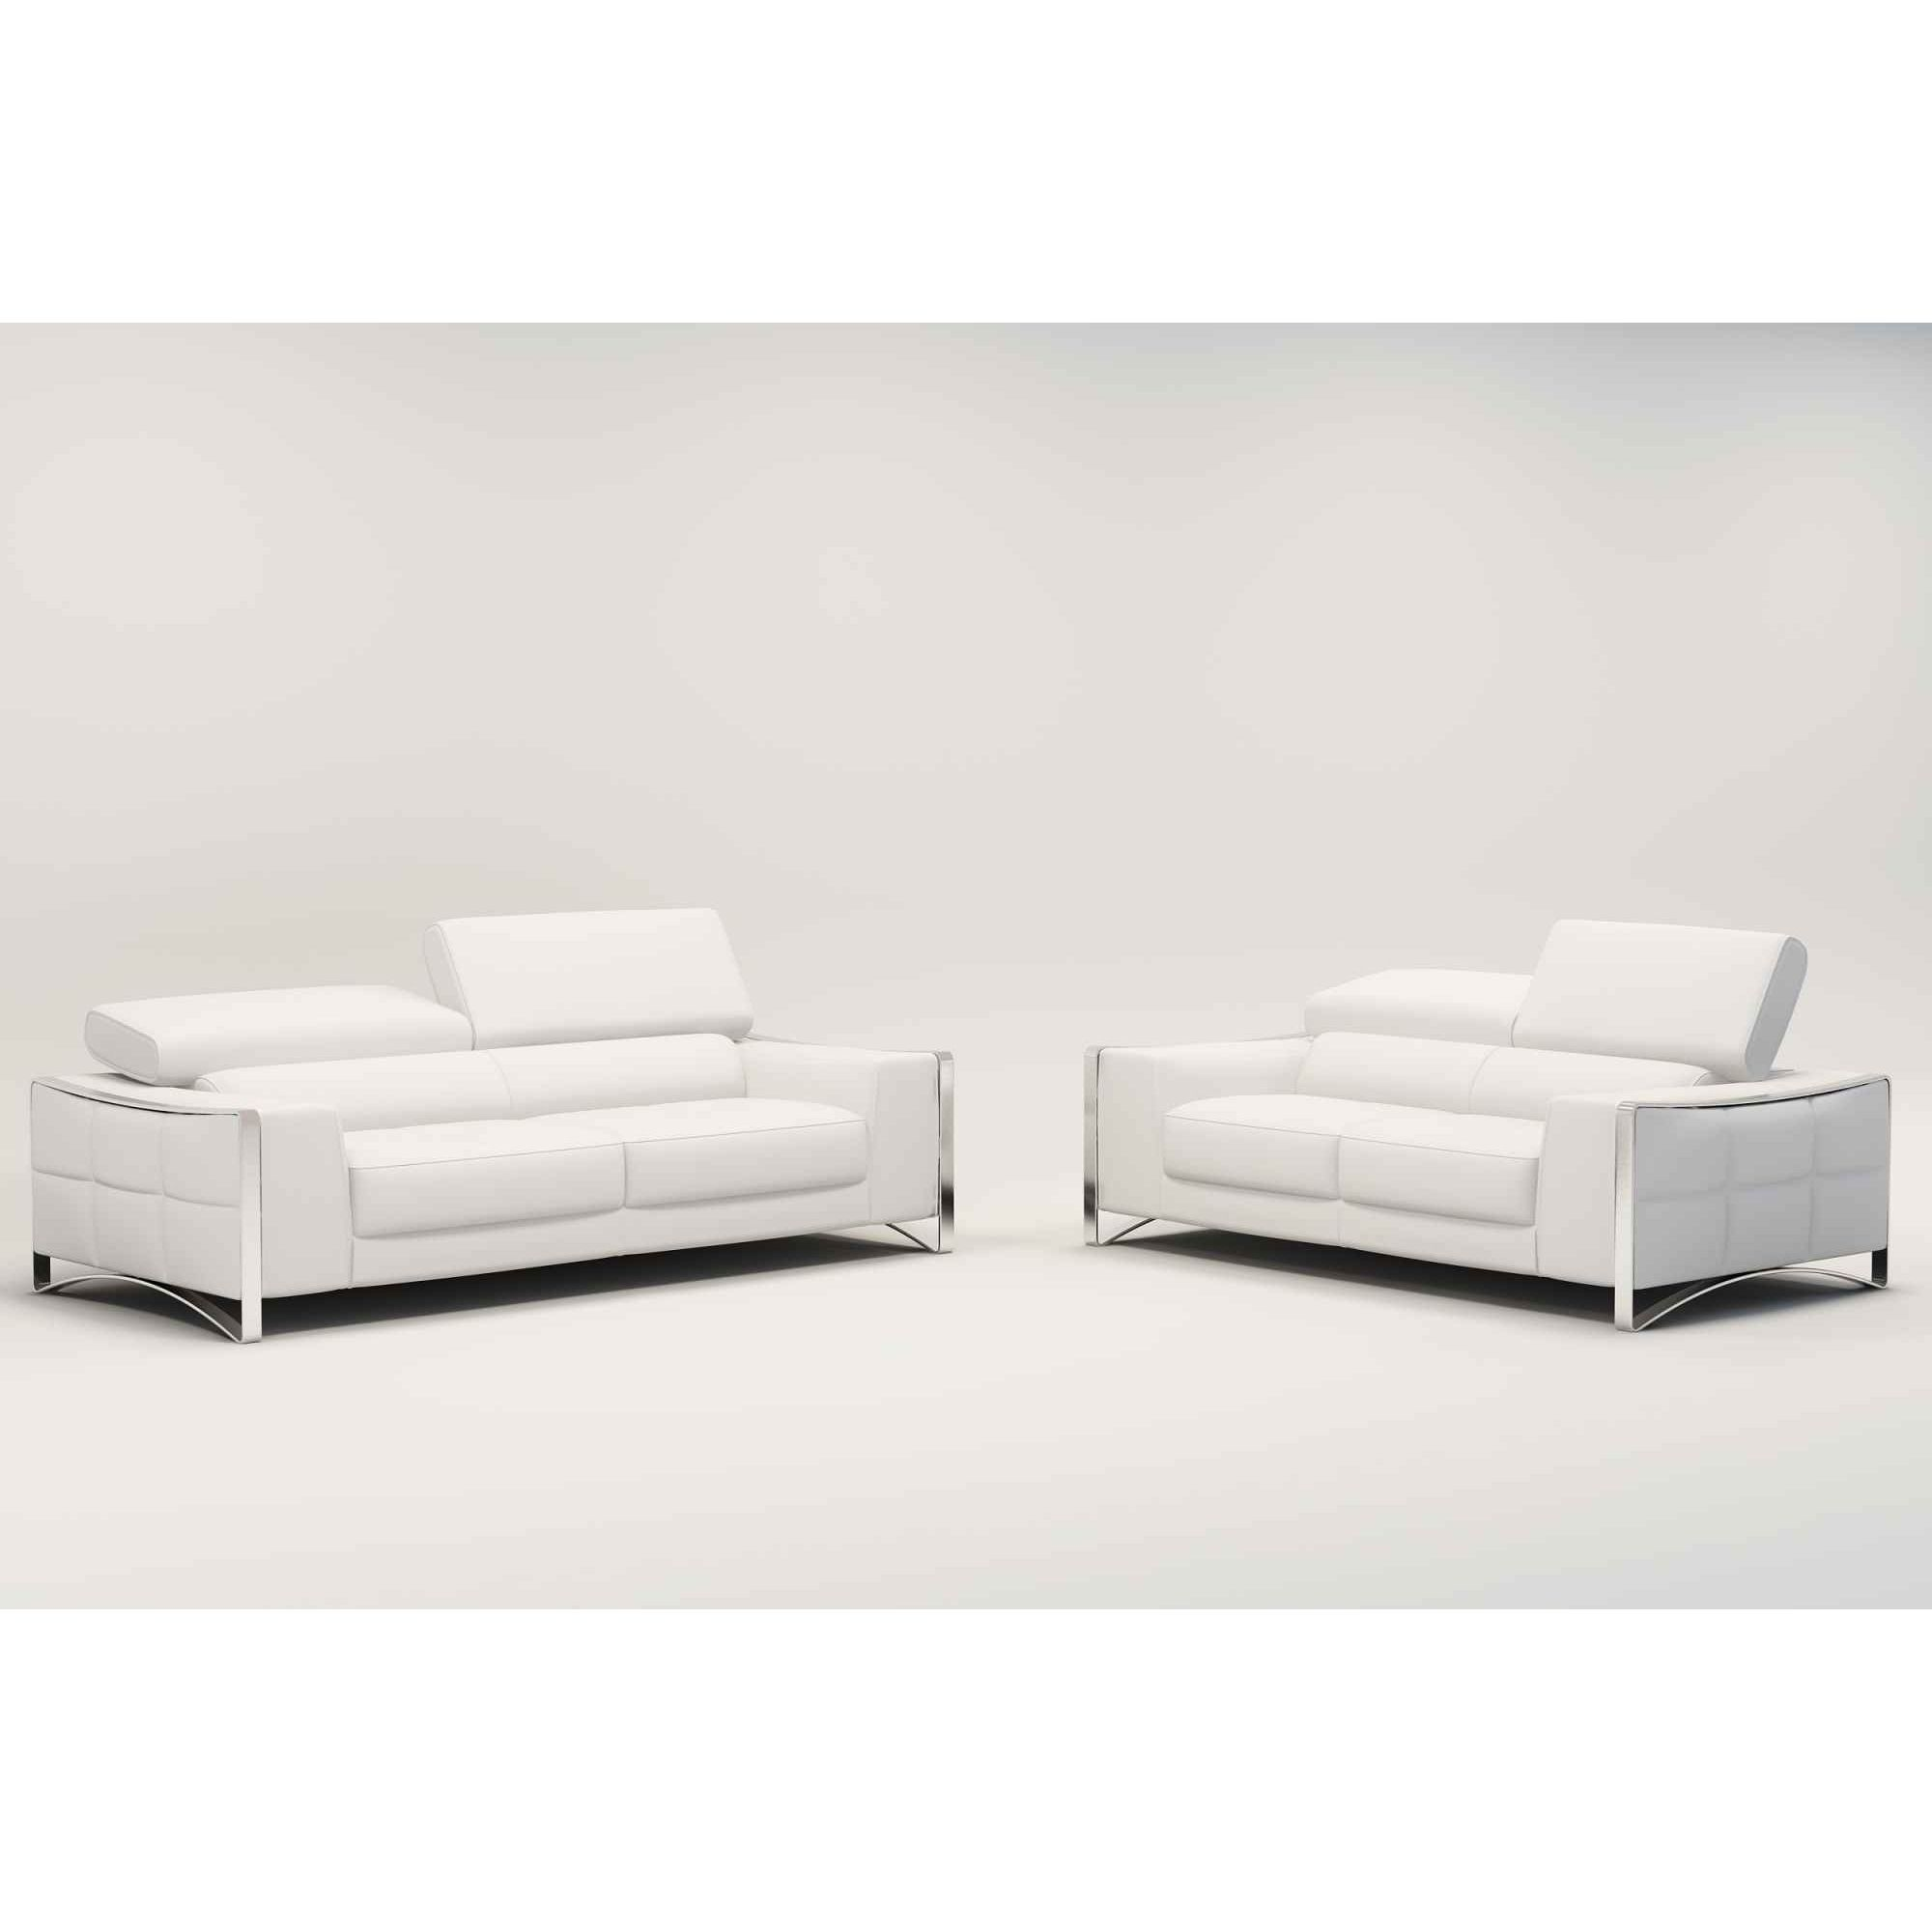 Deco in paris 2 ensemble canape cuir 3 2 places blanc for Canape lit cuir 3 places